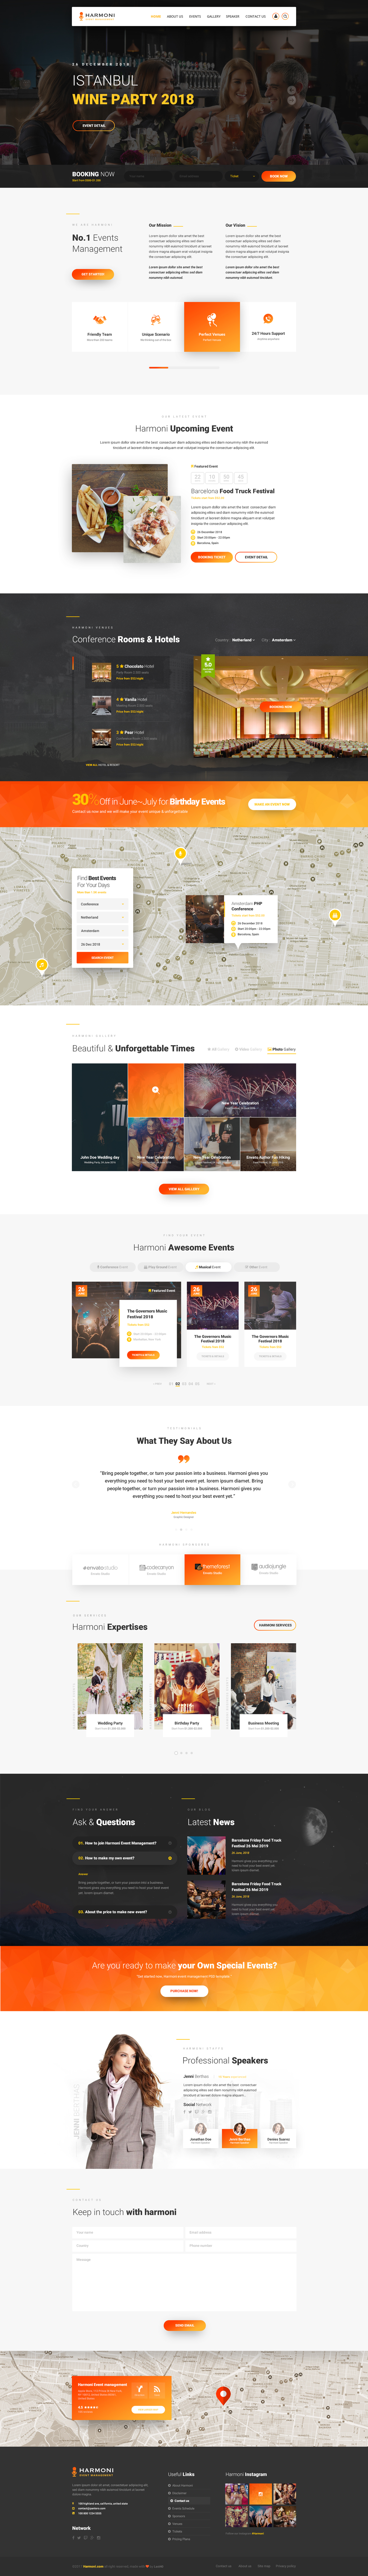 Harmoni - Event Management PSD Template by Last40 | ThemeForest